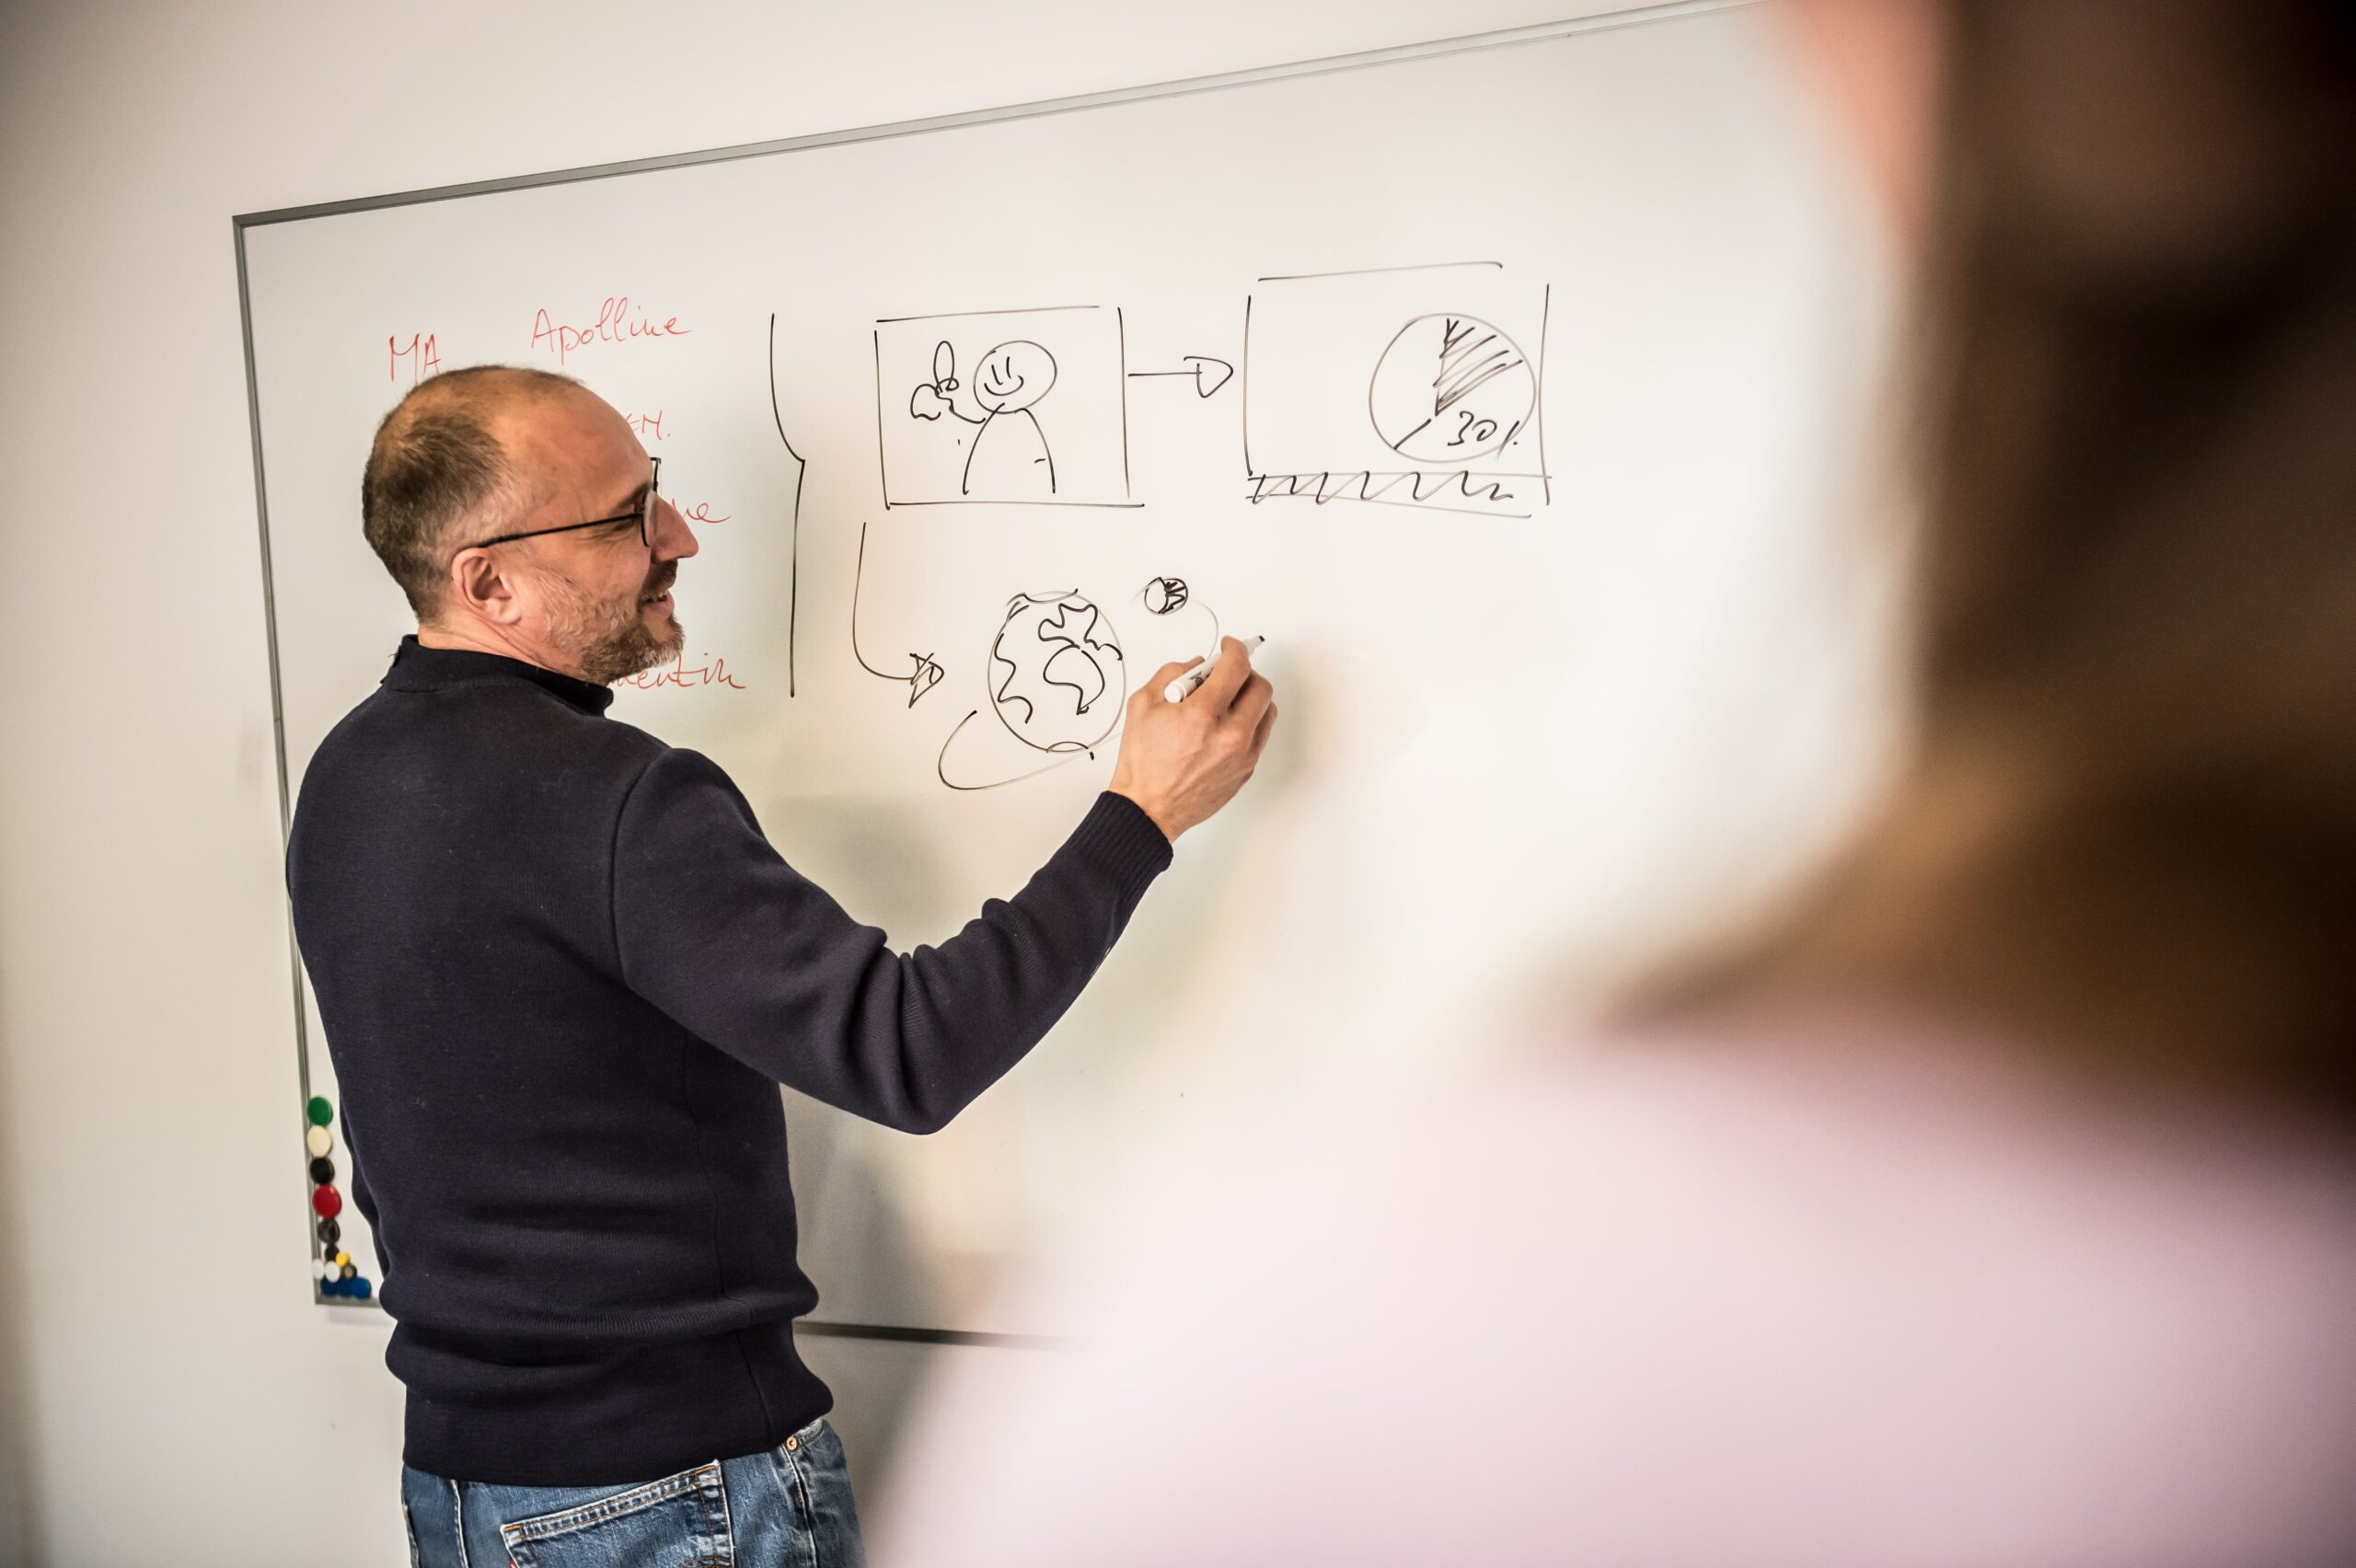 Picture of Quentin D'Haeye (Media Architect Beehived Media) drawing on a whiteboard